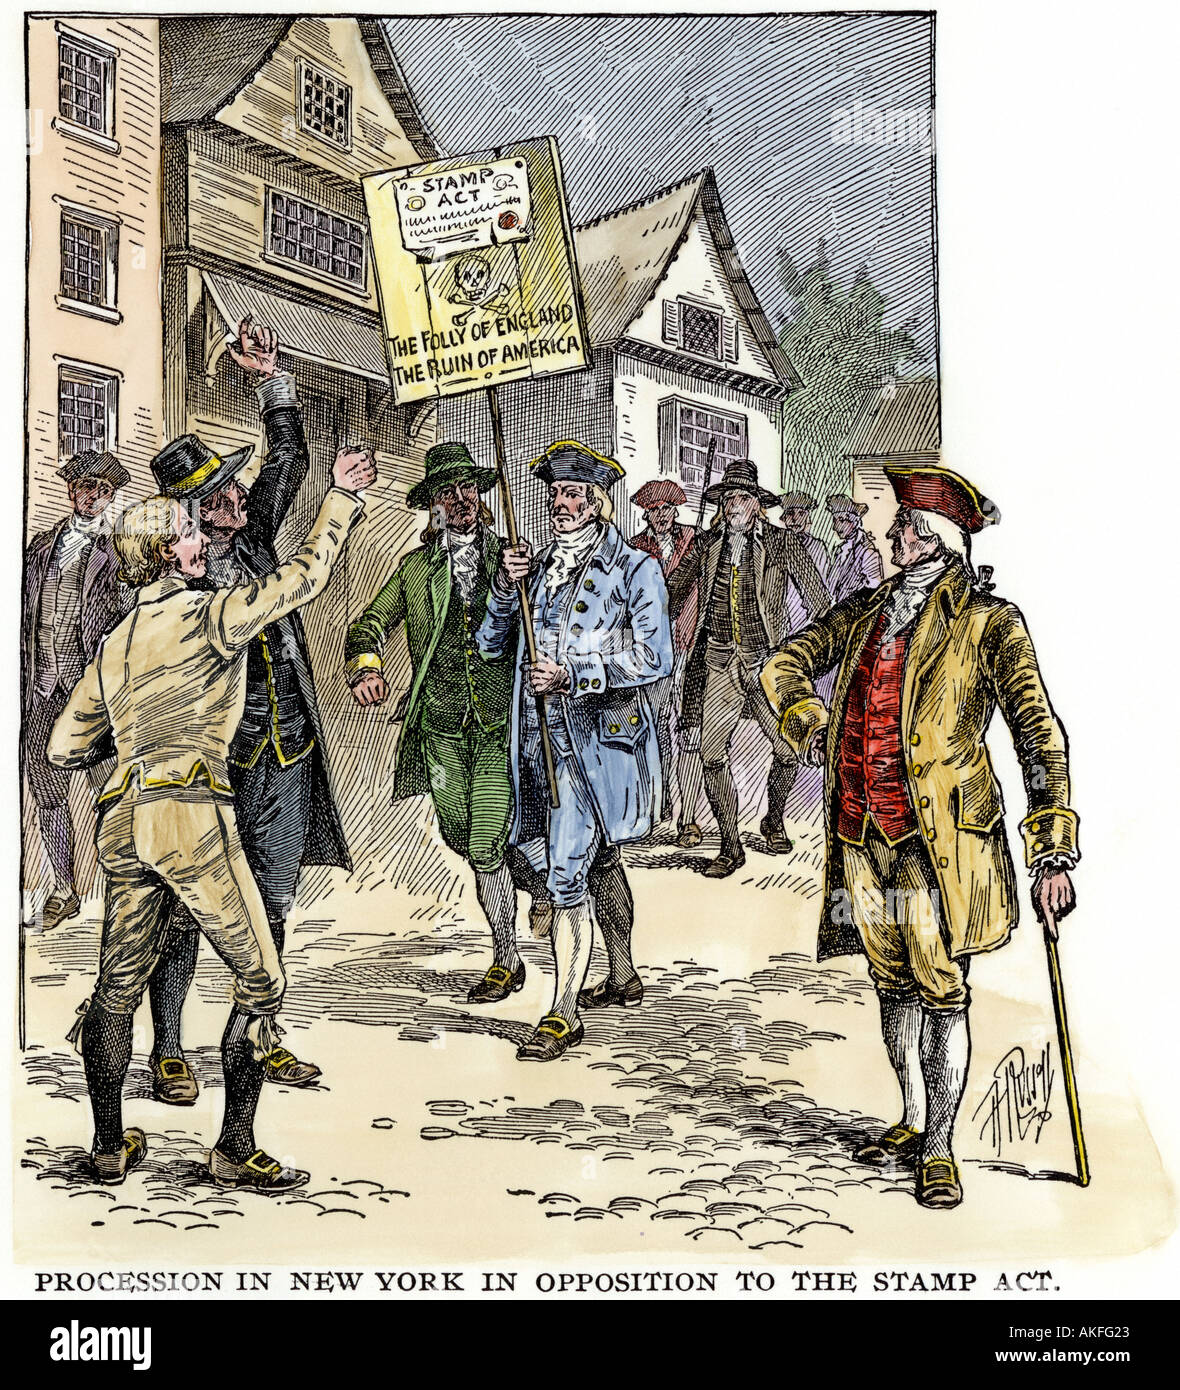 an introduction to the revolutionary war the stamp act of 1765 Faced with massive national debts incurred by the recent war with france these feelings heightened with the stamp act of 1765 introduction and chapters 1-5 brown, major problems in the era of the american revolution, pp 72-96, 98-136.